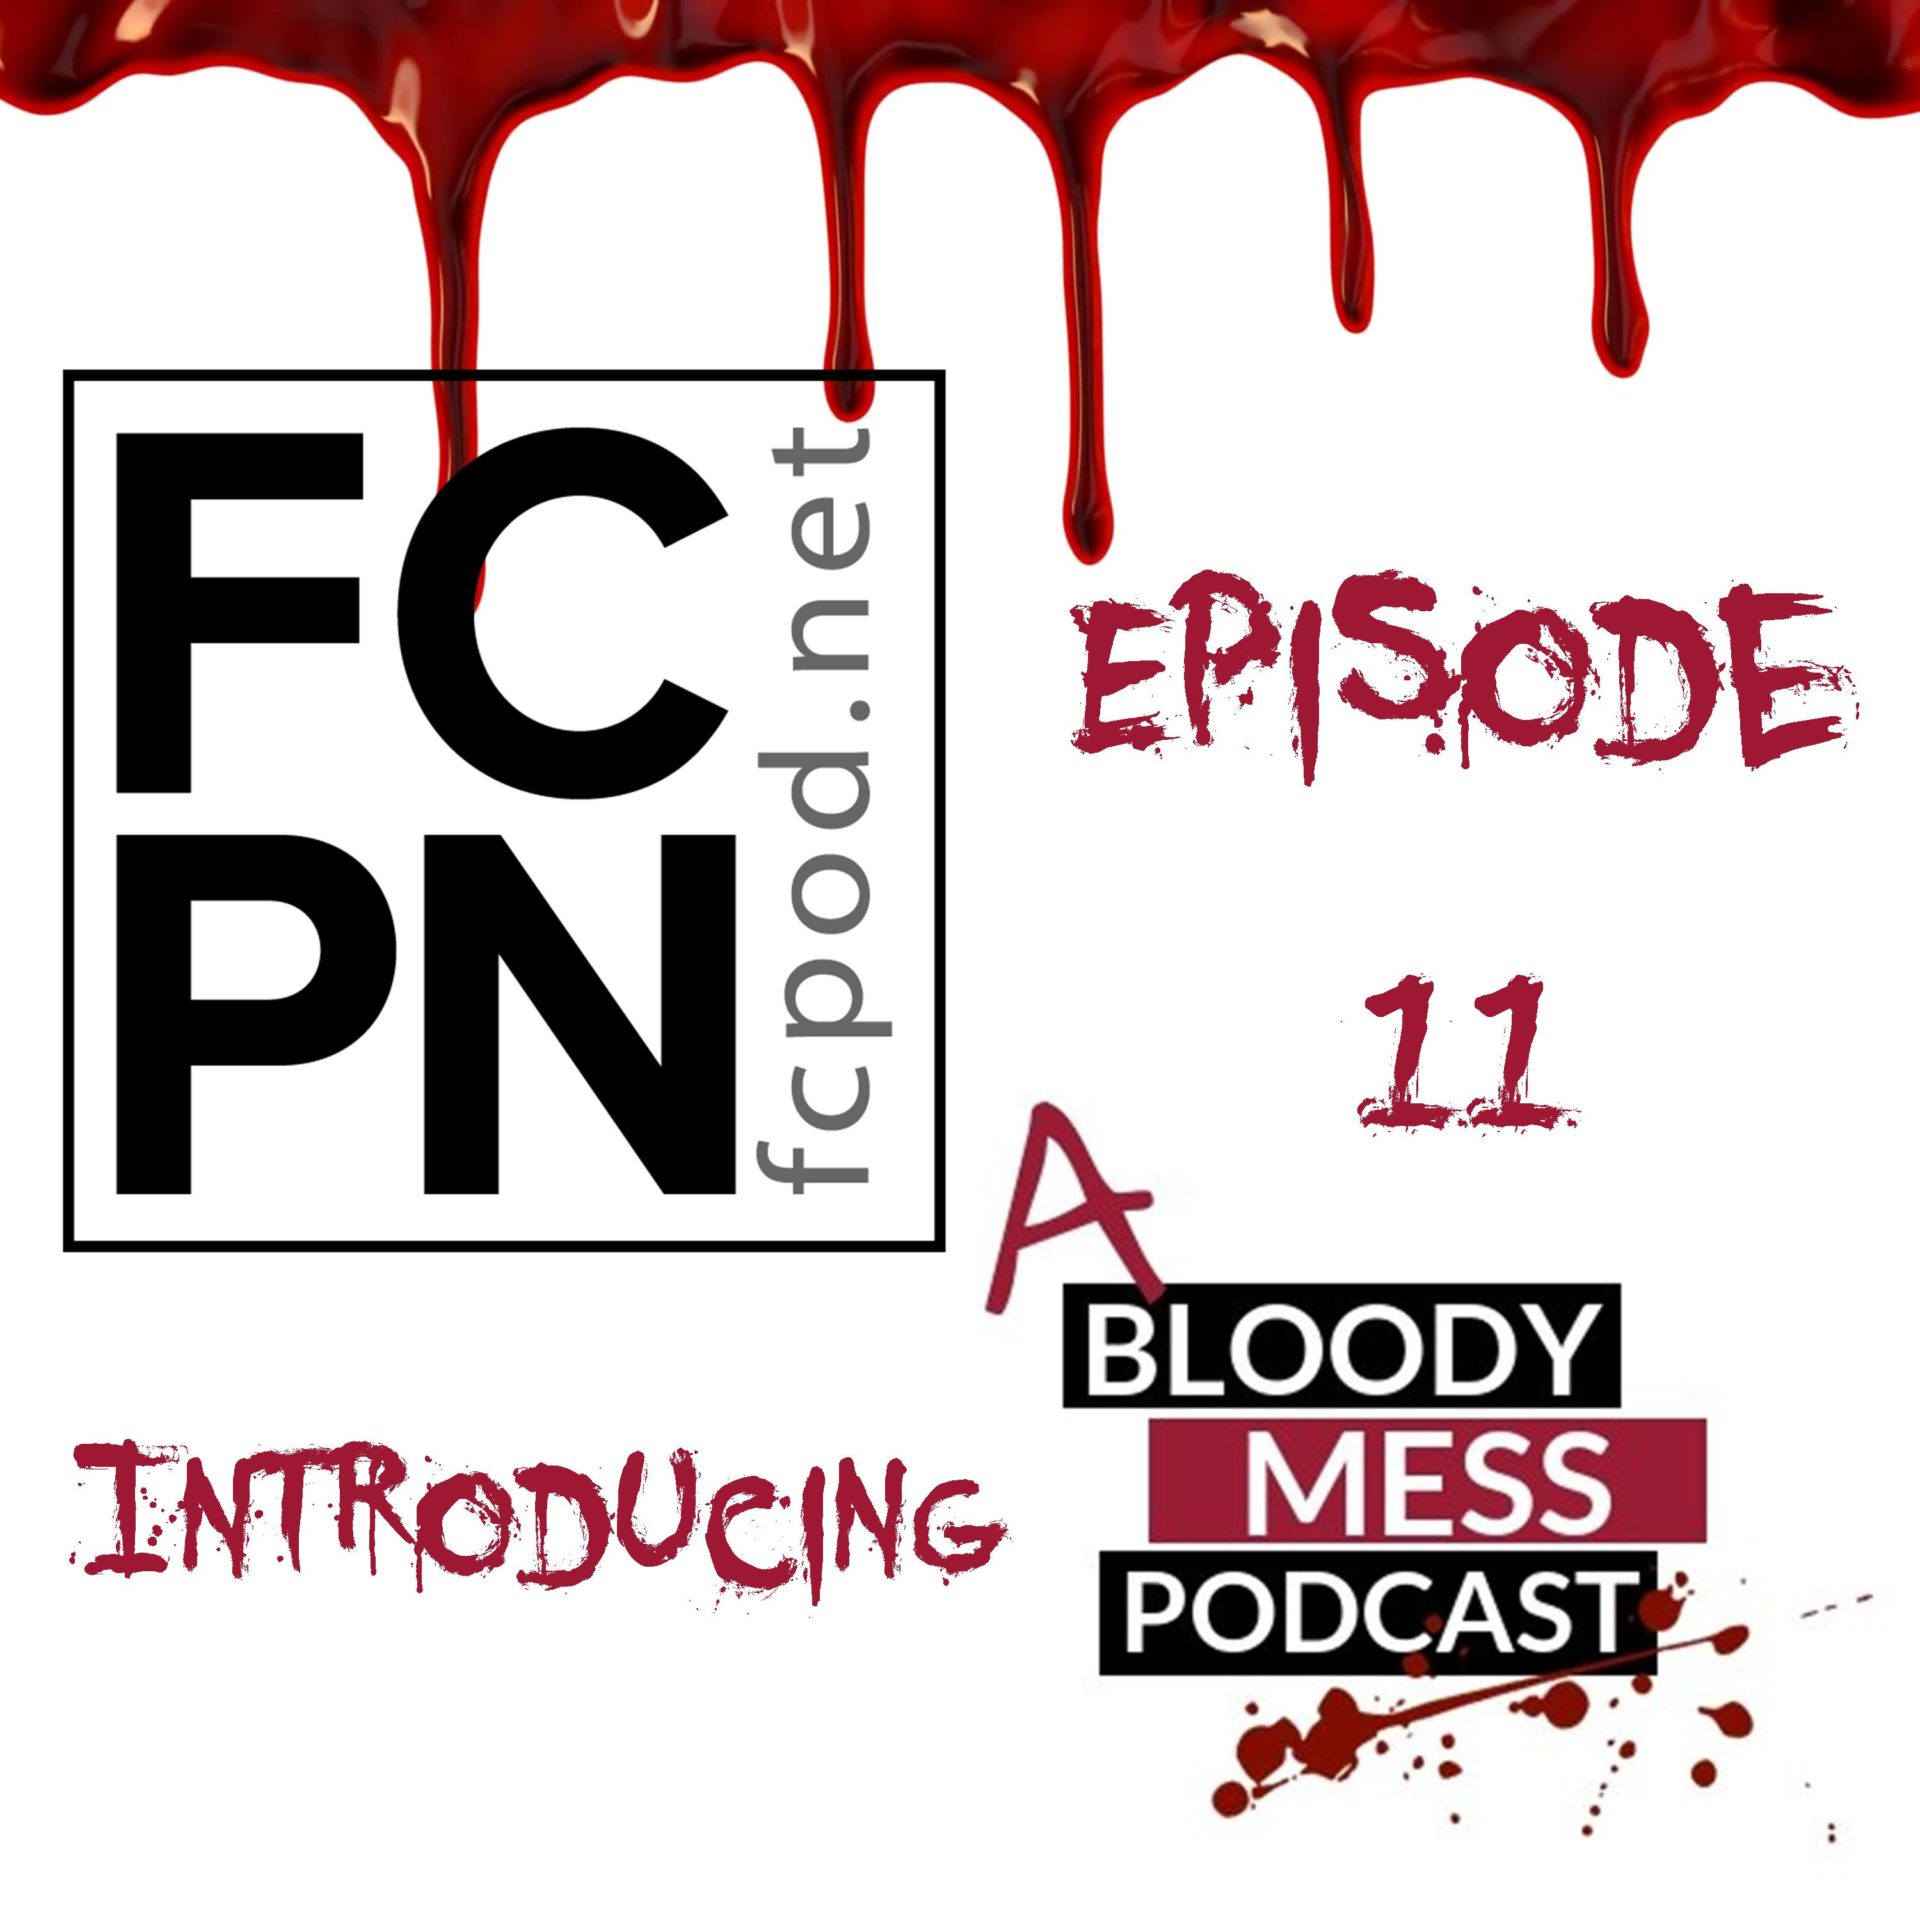 Episode 11 – Introducing… A Bloody Mess Podcast